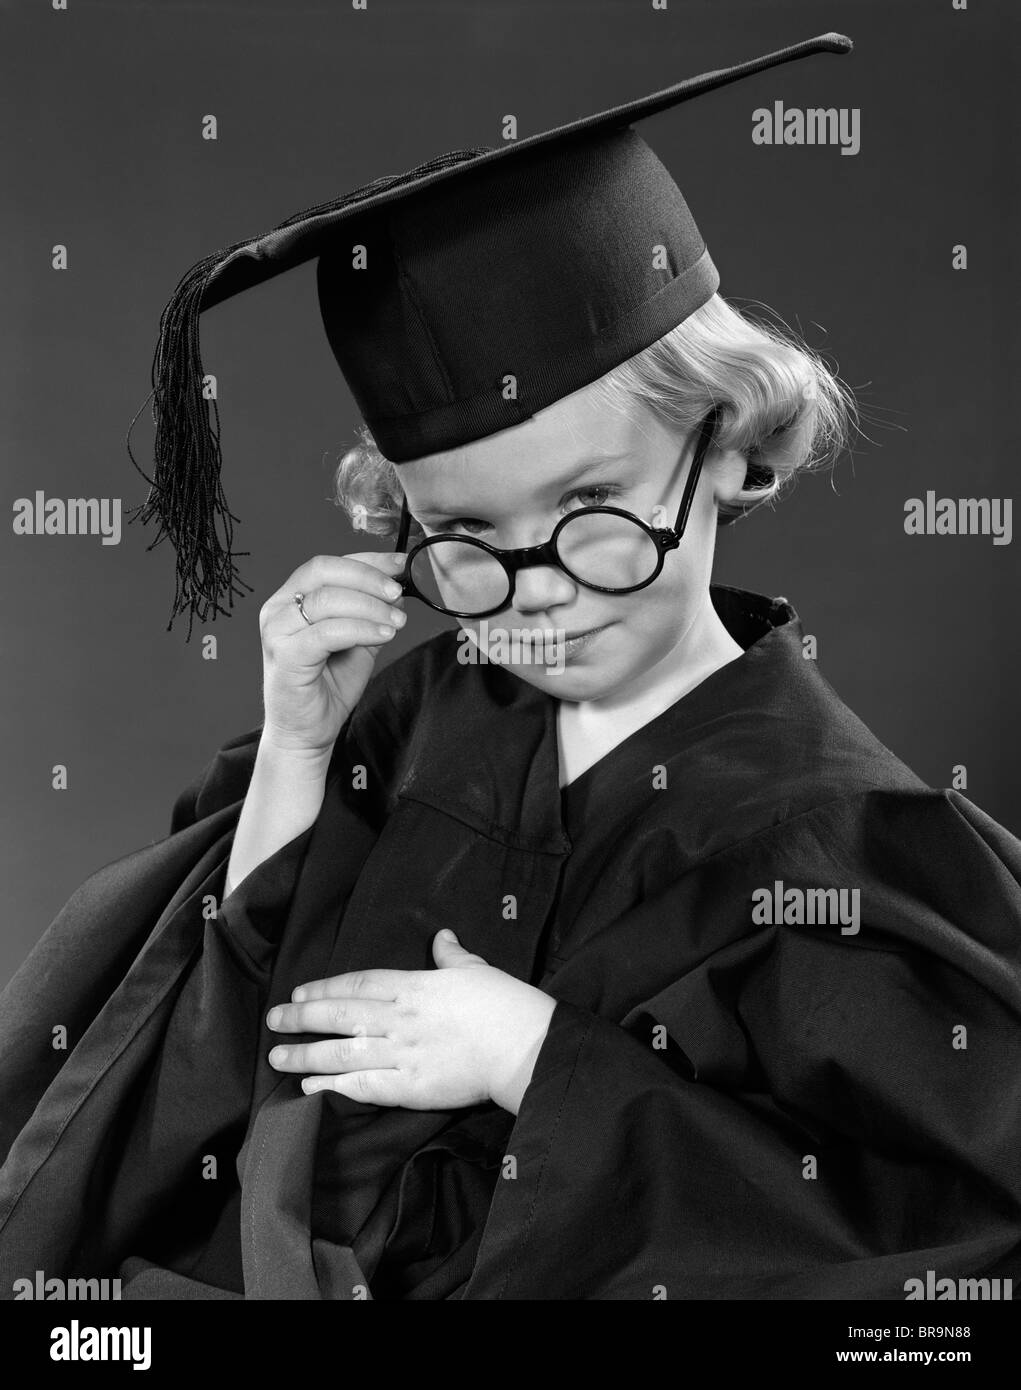 Cap And Gown Black and White Stock Photos & Images - Alamy